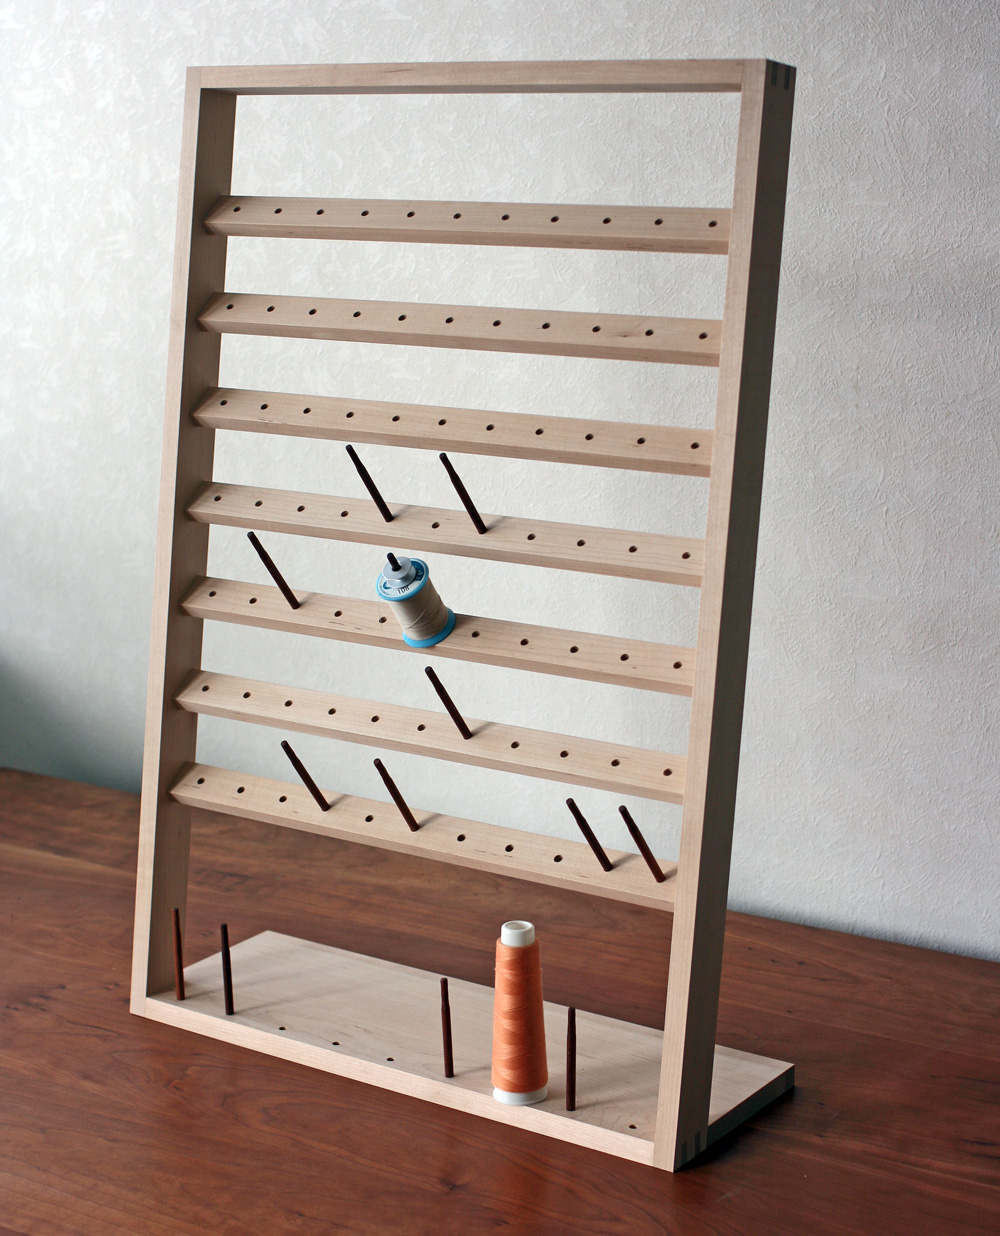 Sewing Thread Storage Rack